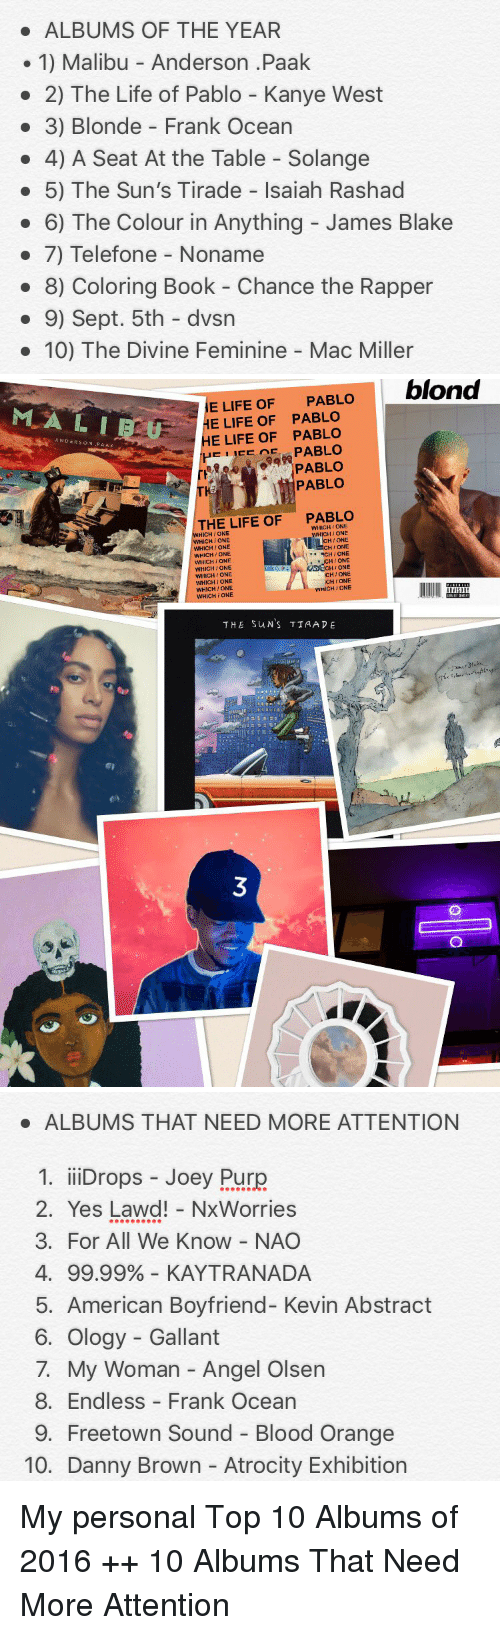 Chance the Rapper, Frank Ocean, and Funny: ALBUMS OF THE YEAR  1) Malibu Anderson .Paak  2) The Life of Pablo Kanye West  3) Blonde Frank Ocean  4) A Seat At the Table Solange  5) The Sun's Tirade Isaiah Rashad  6) The Colour in Anything James Blake  7) Telefone No  8) Coloring Book Chance the Rapper  9) Sept. 5th dvsn  10) The Divine Feminine Mac Miller   blond  MAL I UE HE LIFE OF PABLO  E LIFE OF PABLO  AND  RSON PAAK  PABLO  HE CA PABLO  PABLO  THE LIFE OF  PABLO  HICH ONE  CH ONE.  WHICH JONE  -CH ONE  WHICH ONE.  ONE  HIONE  WHICH ONE  WHICH ONE.  ICH ONE  CH ONE  WHICH iONE  WHICH ONE  WHICH ONE  THE Su NS TTAA DE   ALBUMS THAT NEED MORE ATTENTION  1. iiiDrops Joey Purp  2. Yes Lawd! NxWorries  3. For All We Know NAO  4. 99.99% KAYTRANADA  5. American Boyfriend- Kevin Abstract  6. Ology Gallant  7. My Woman Angel Olsen  8. Endless Frank Ocean  9. Freetown Sound Blood Orange  10. Danny Brown Atrocity Exhibition My personal Top 10 Albums of 2016 ++ 10 Albums That Need More Attention